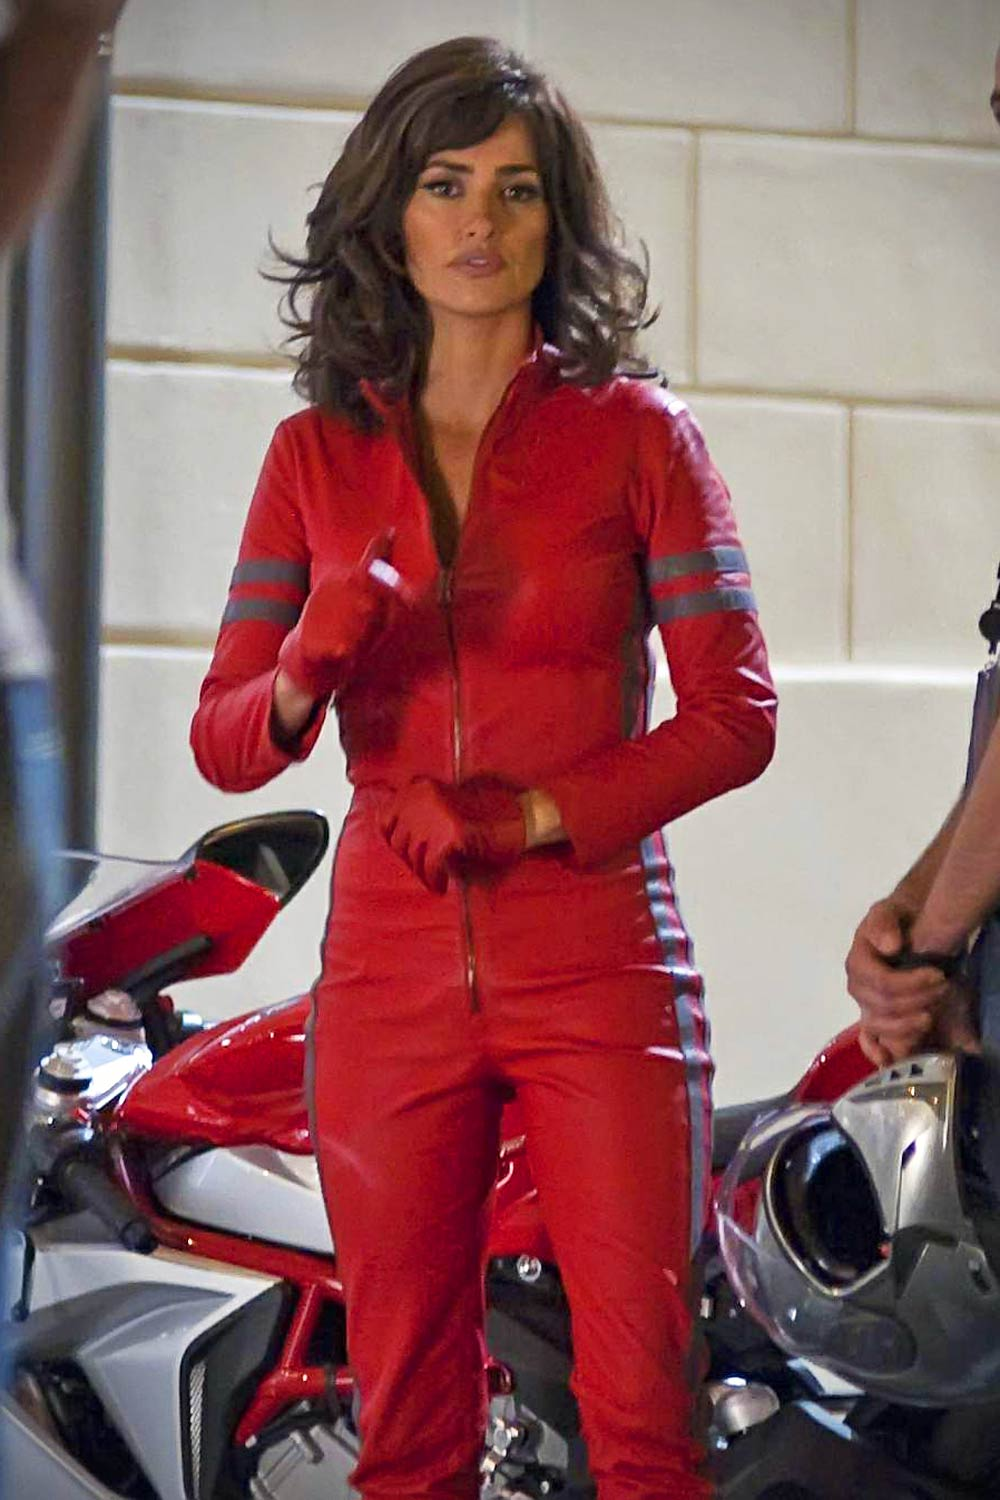 Penelope Cruz Filming Scenes For Zoolander 2 Leather